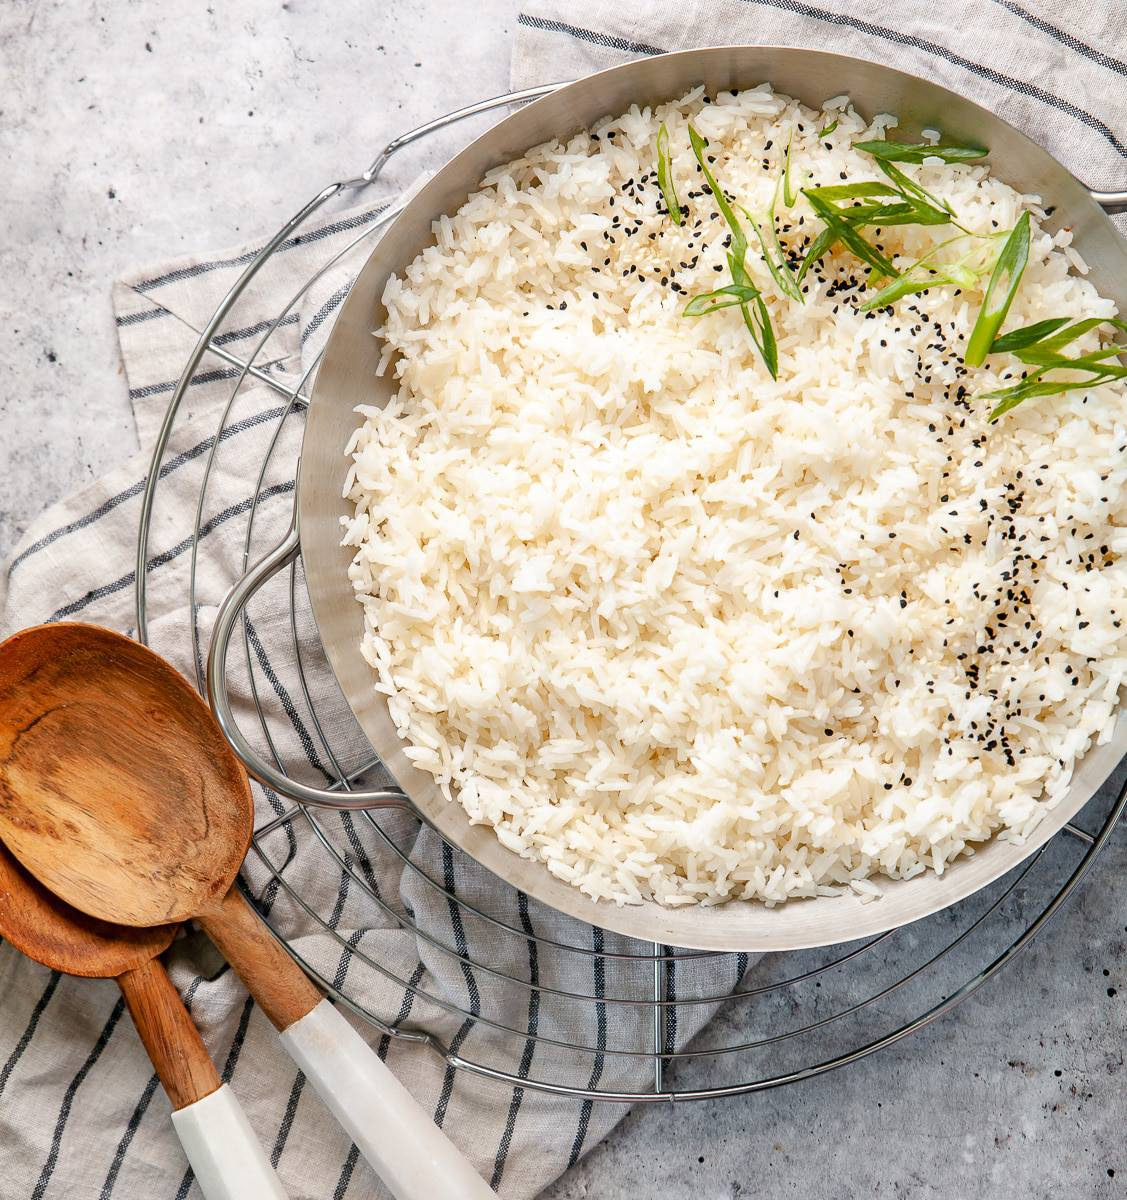 Perfect jasmine rice in a skillet, ready to serve.